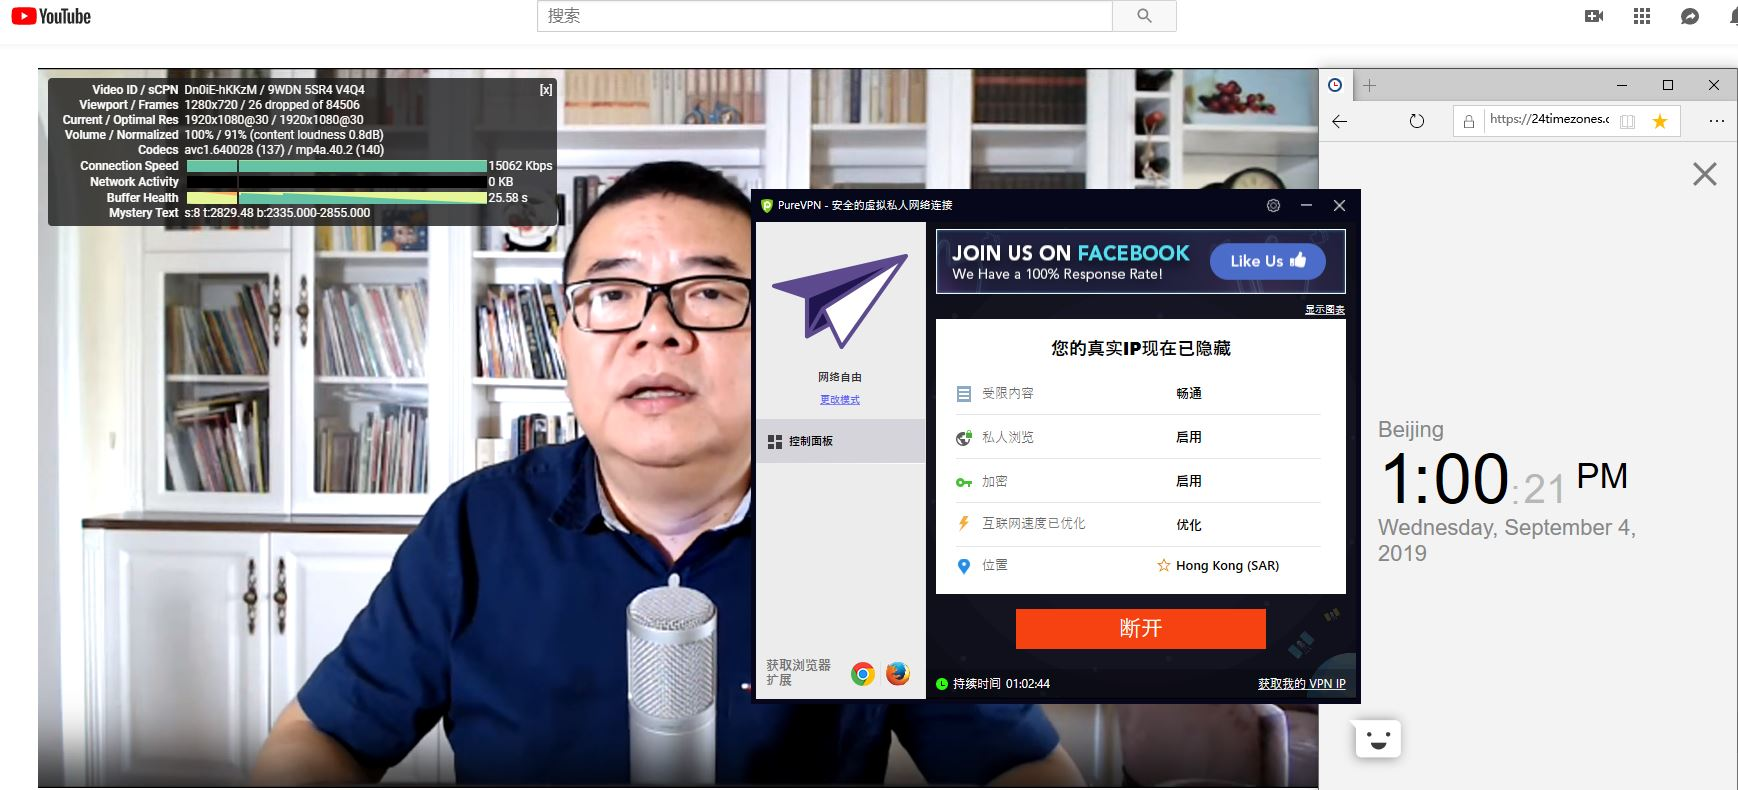 windows Purevpn HongKong 中国翻墙 科学上网 YouTube测试-20190904